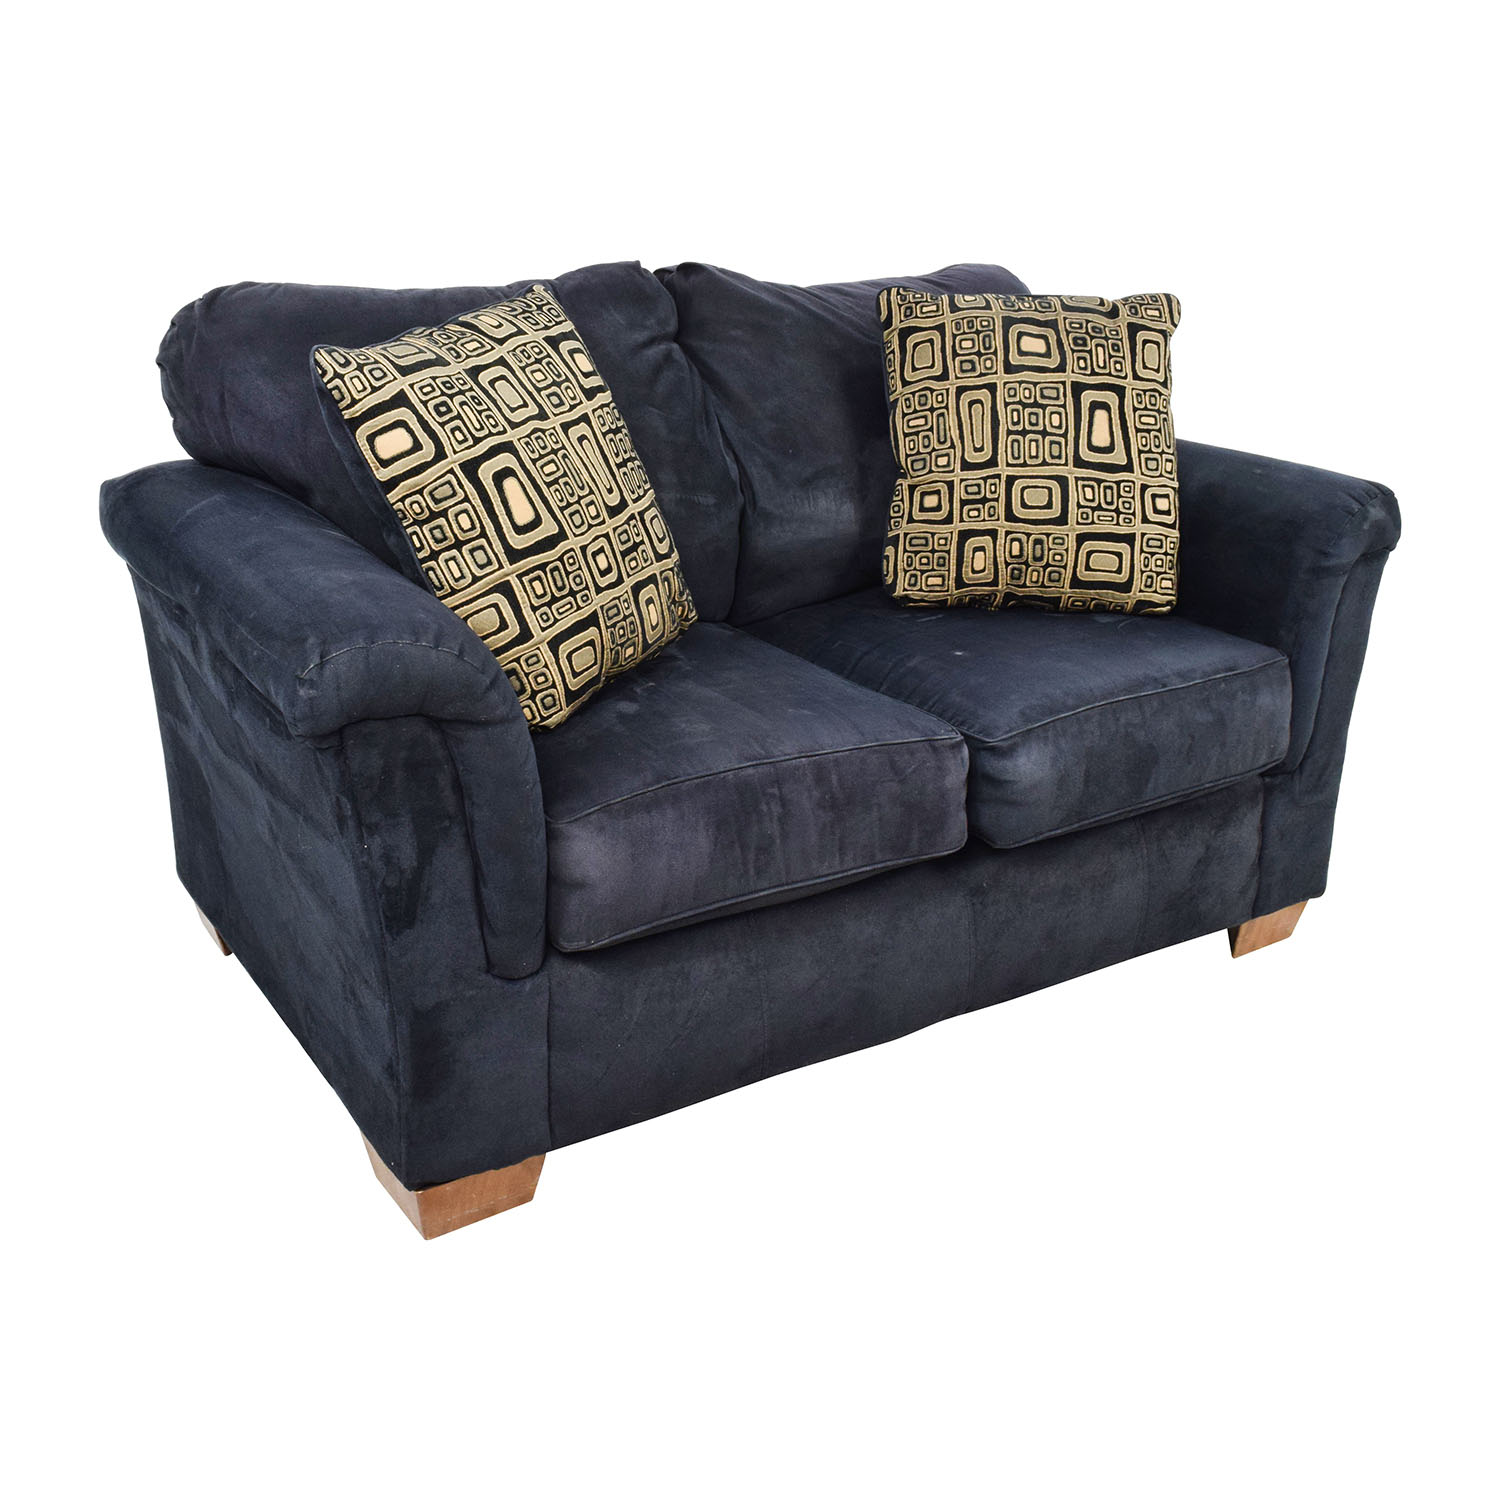 81 Off Ashley Furniture Ashley Furniture Black Loveseat Sofas